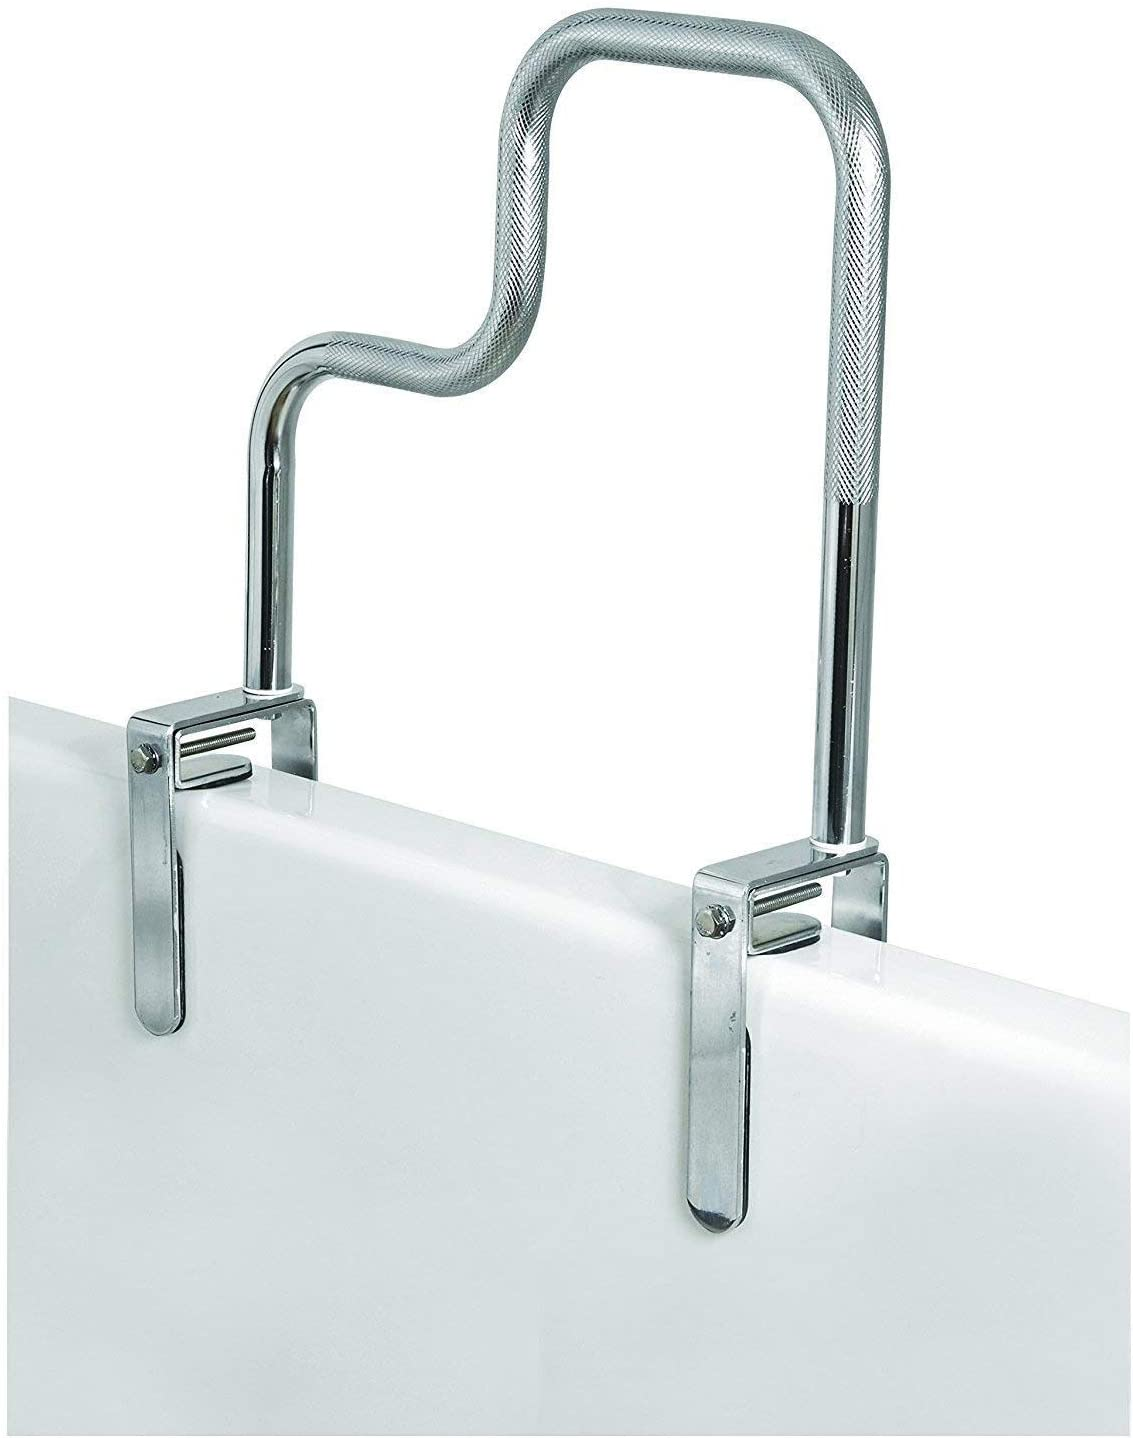 Carex Tri-Grip Bathtub Rail with Chrome Finish - Bathtub Grab Bar Safety Bar For Seniors and Handicap - For Assistance Getting In and Out of Tub, Easy to Install on Most Tubs: Health & Personal Care